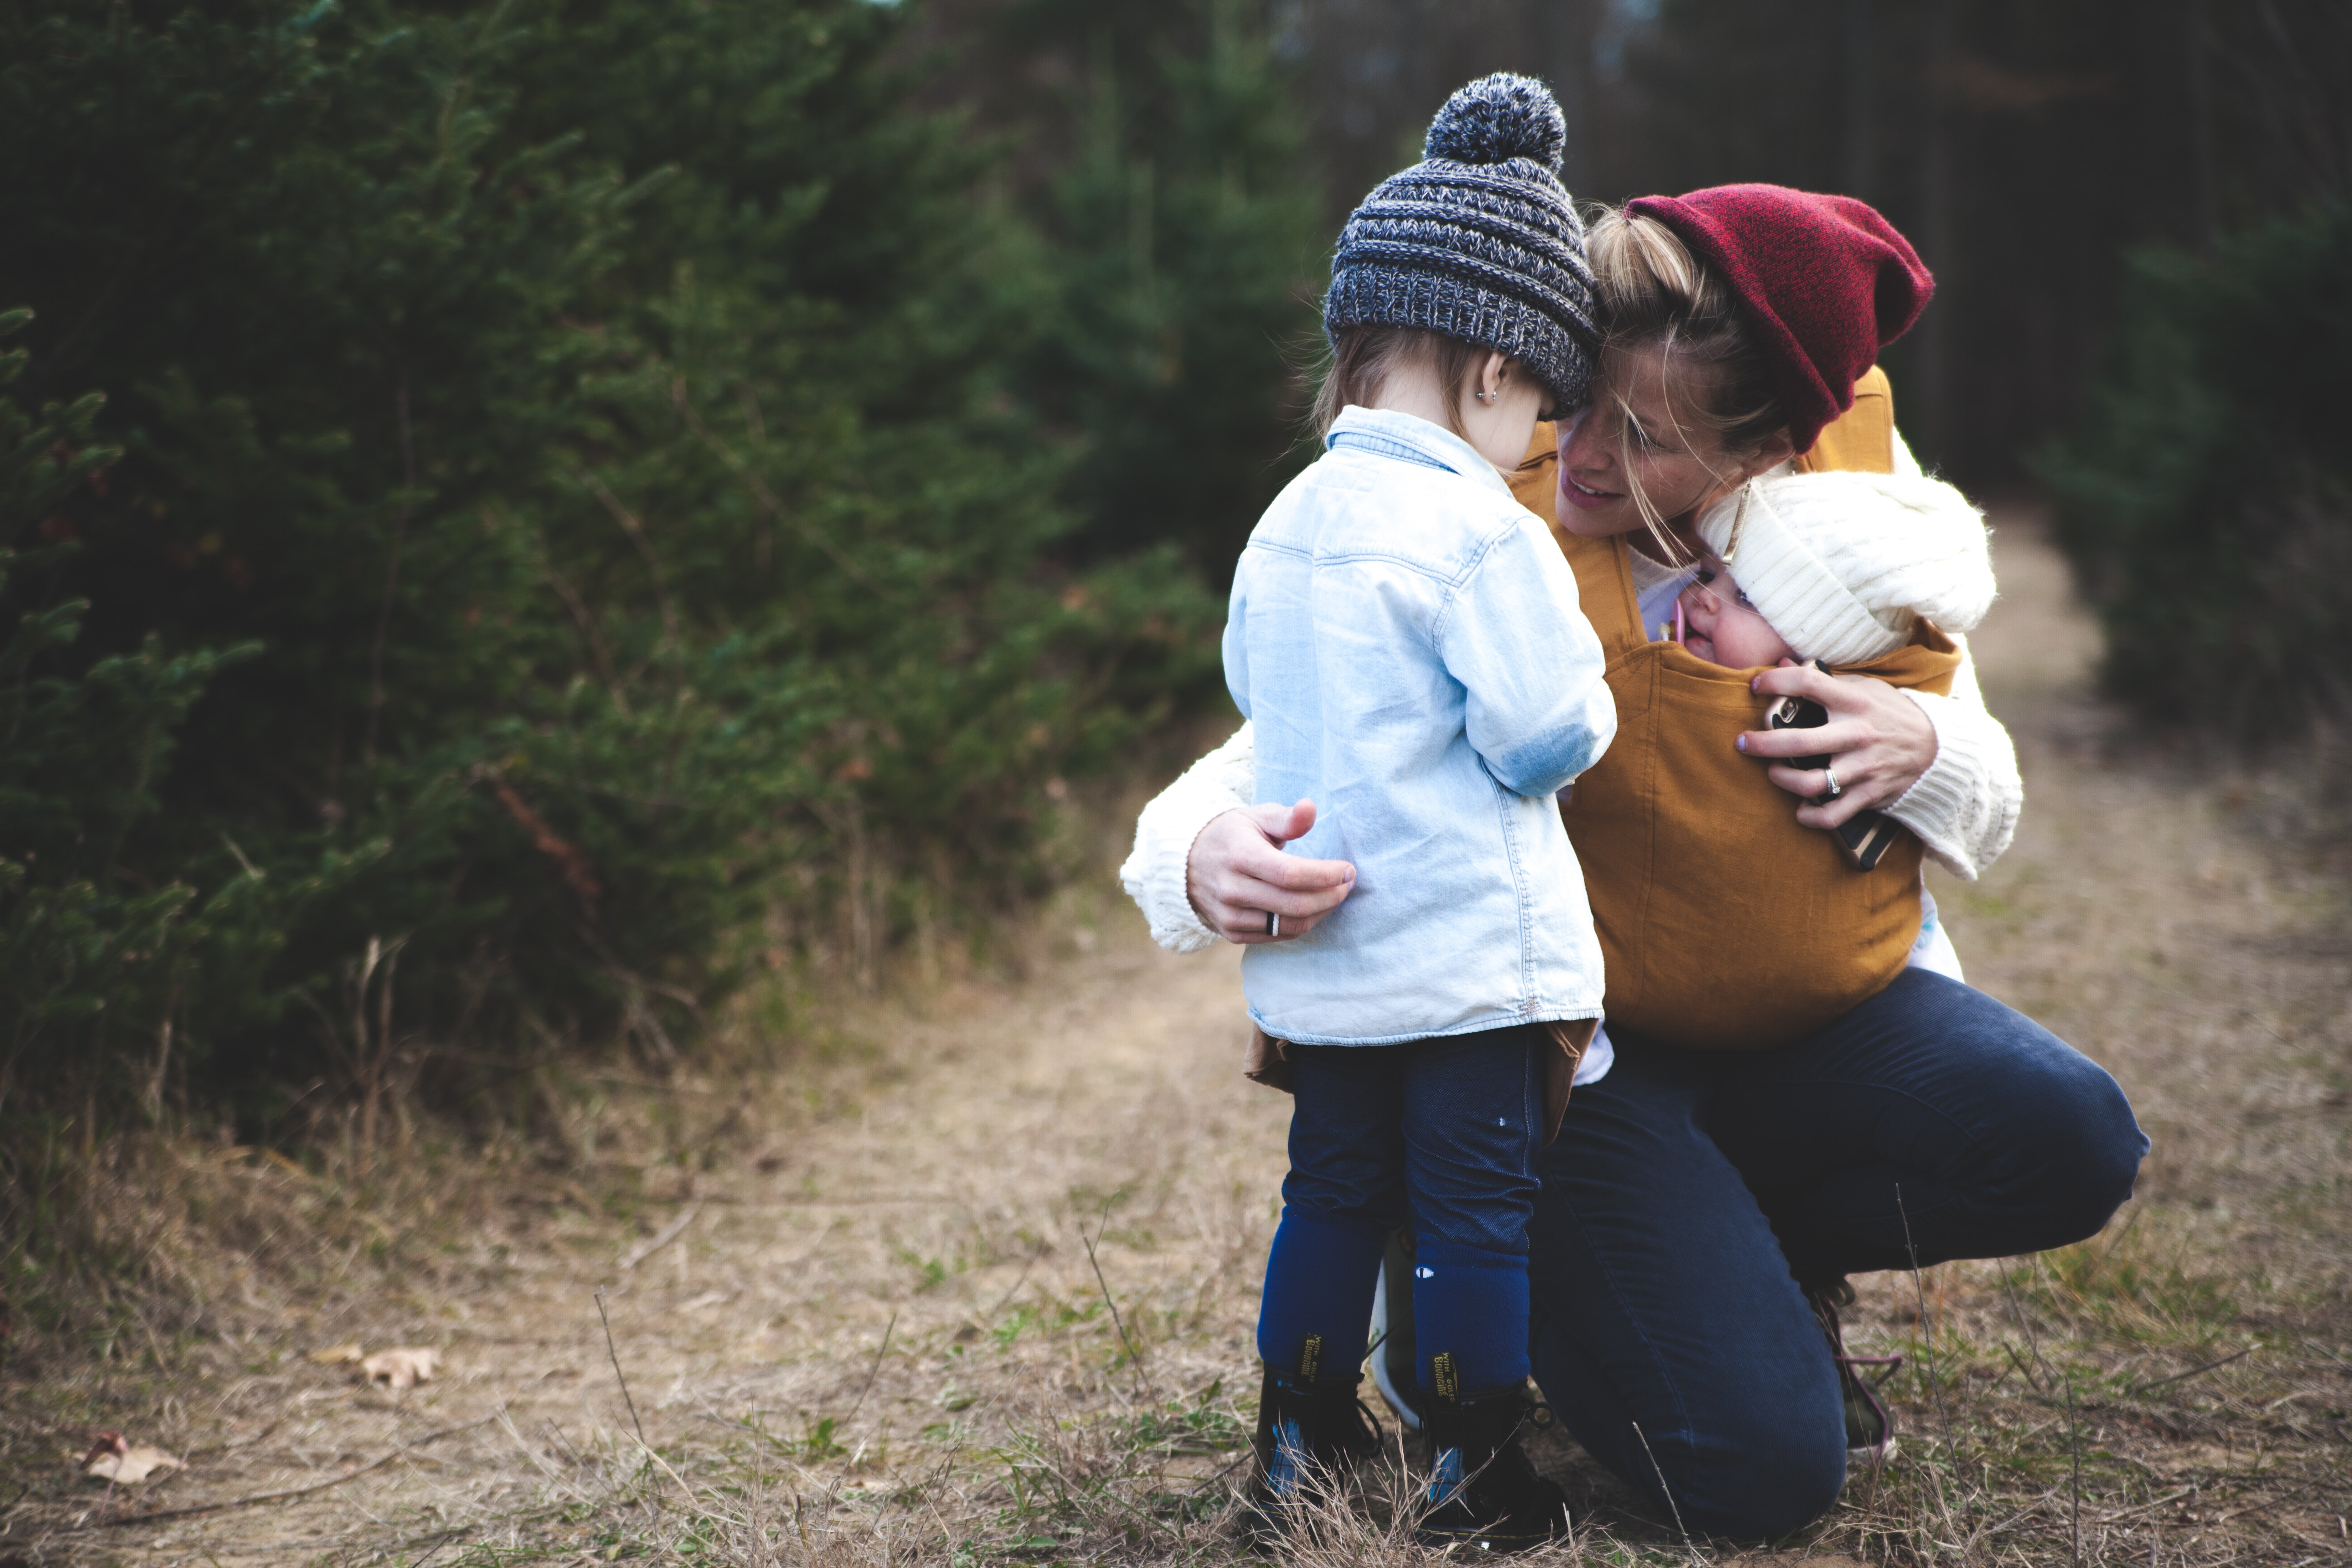 Woman With Brown Baby Carrier And Little Kid In White Jacket, Adult, Mother, Togetherness, Together, HQ Photo